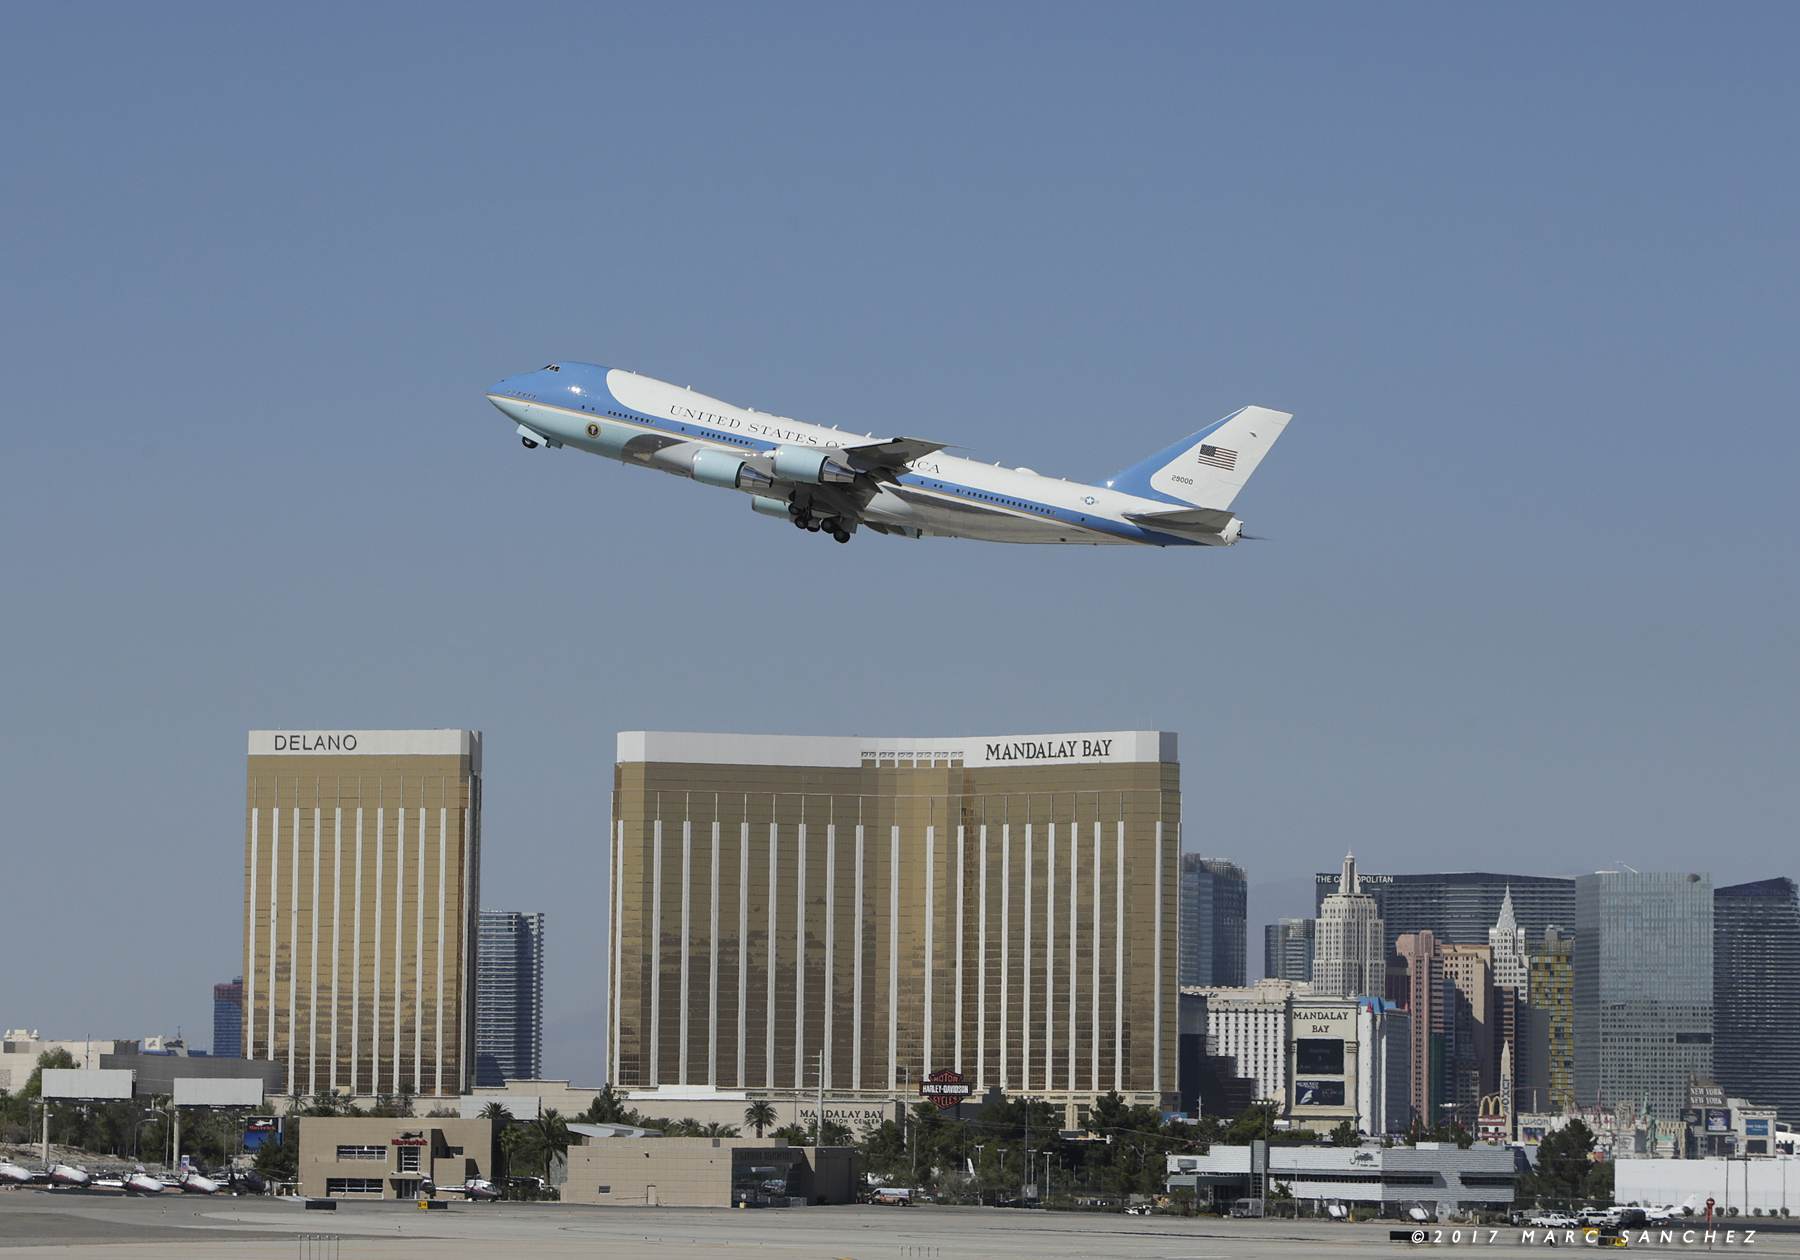 Image of Air Force One with US President Donald Trump and First Lady Melania Trump depart McCarran International Airport in Las Vegas October 4, 2017, with Mandalay Bay Resort in the background.